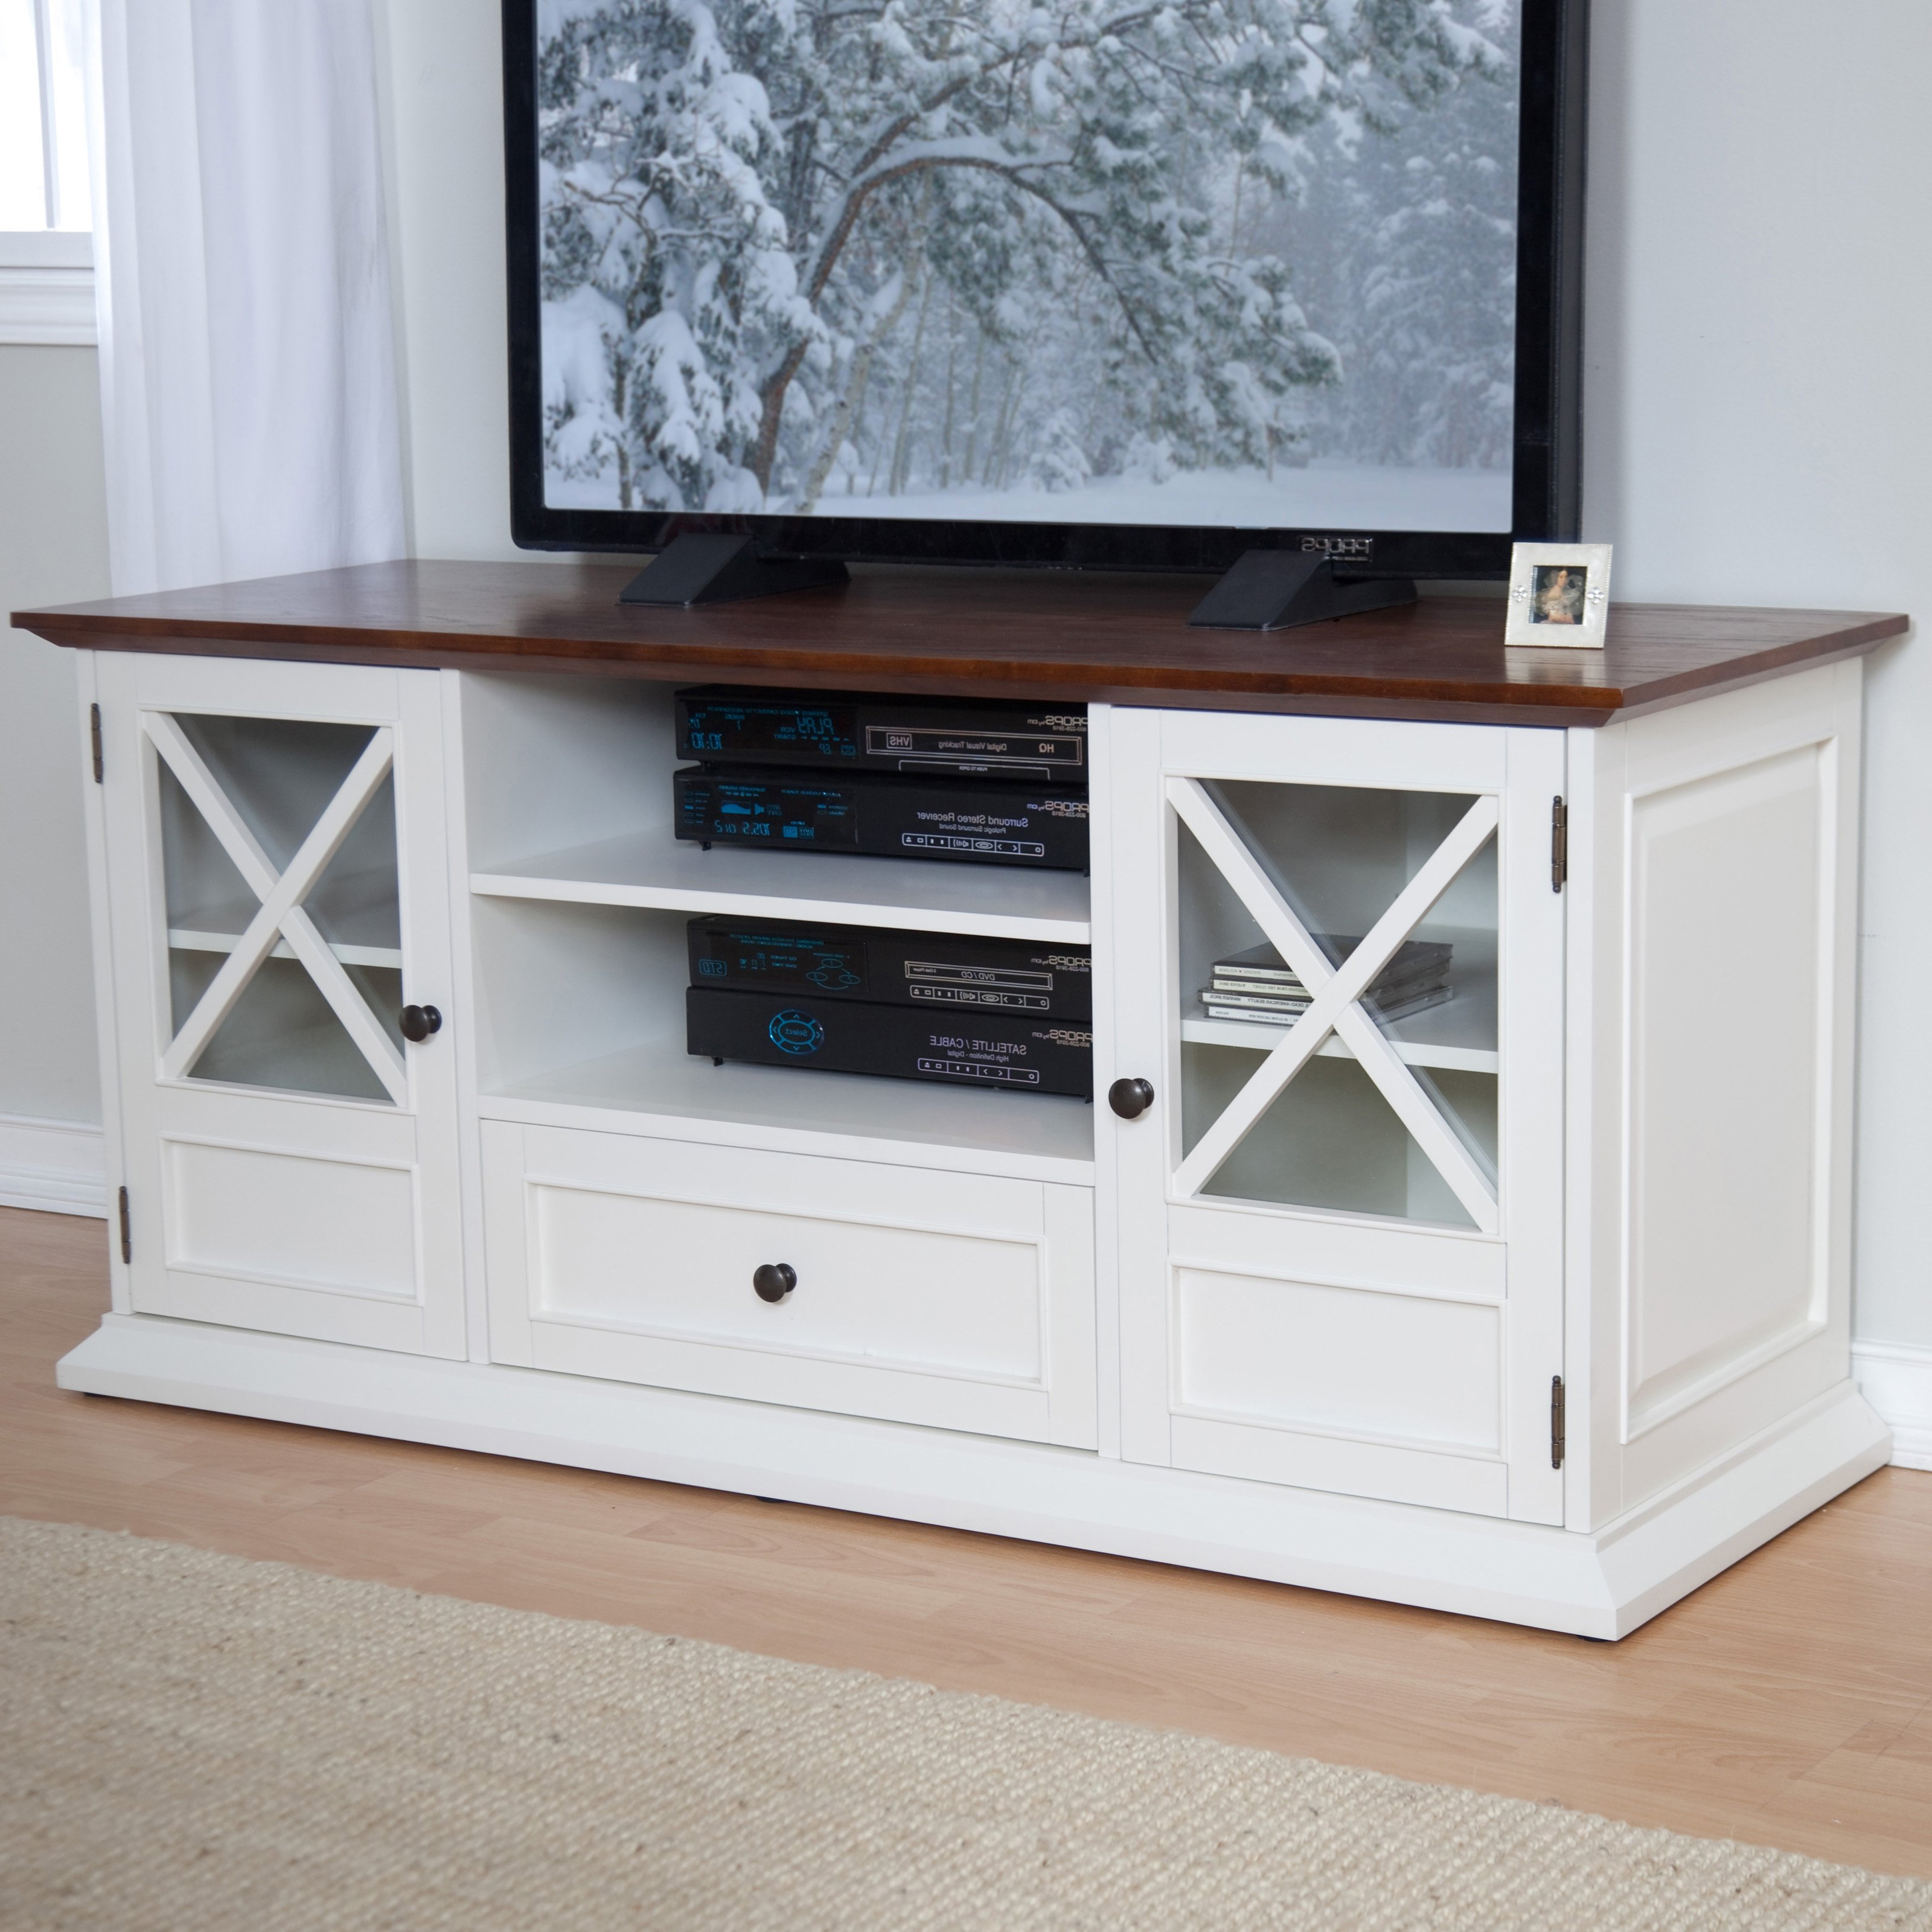 Television Cabinets Tv Stands With Mount Small For Bedroom Tall Ikea With Widely Used Cabinet Tv Stands (View 17 of 20)